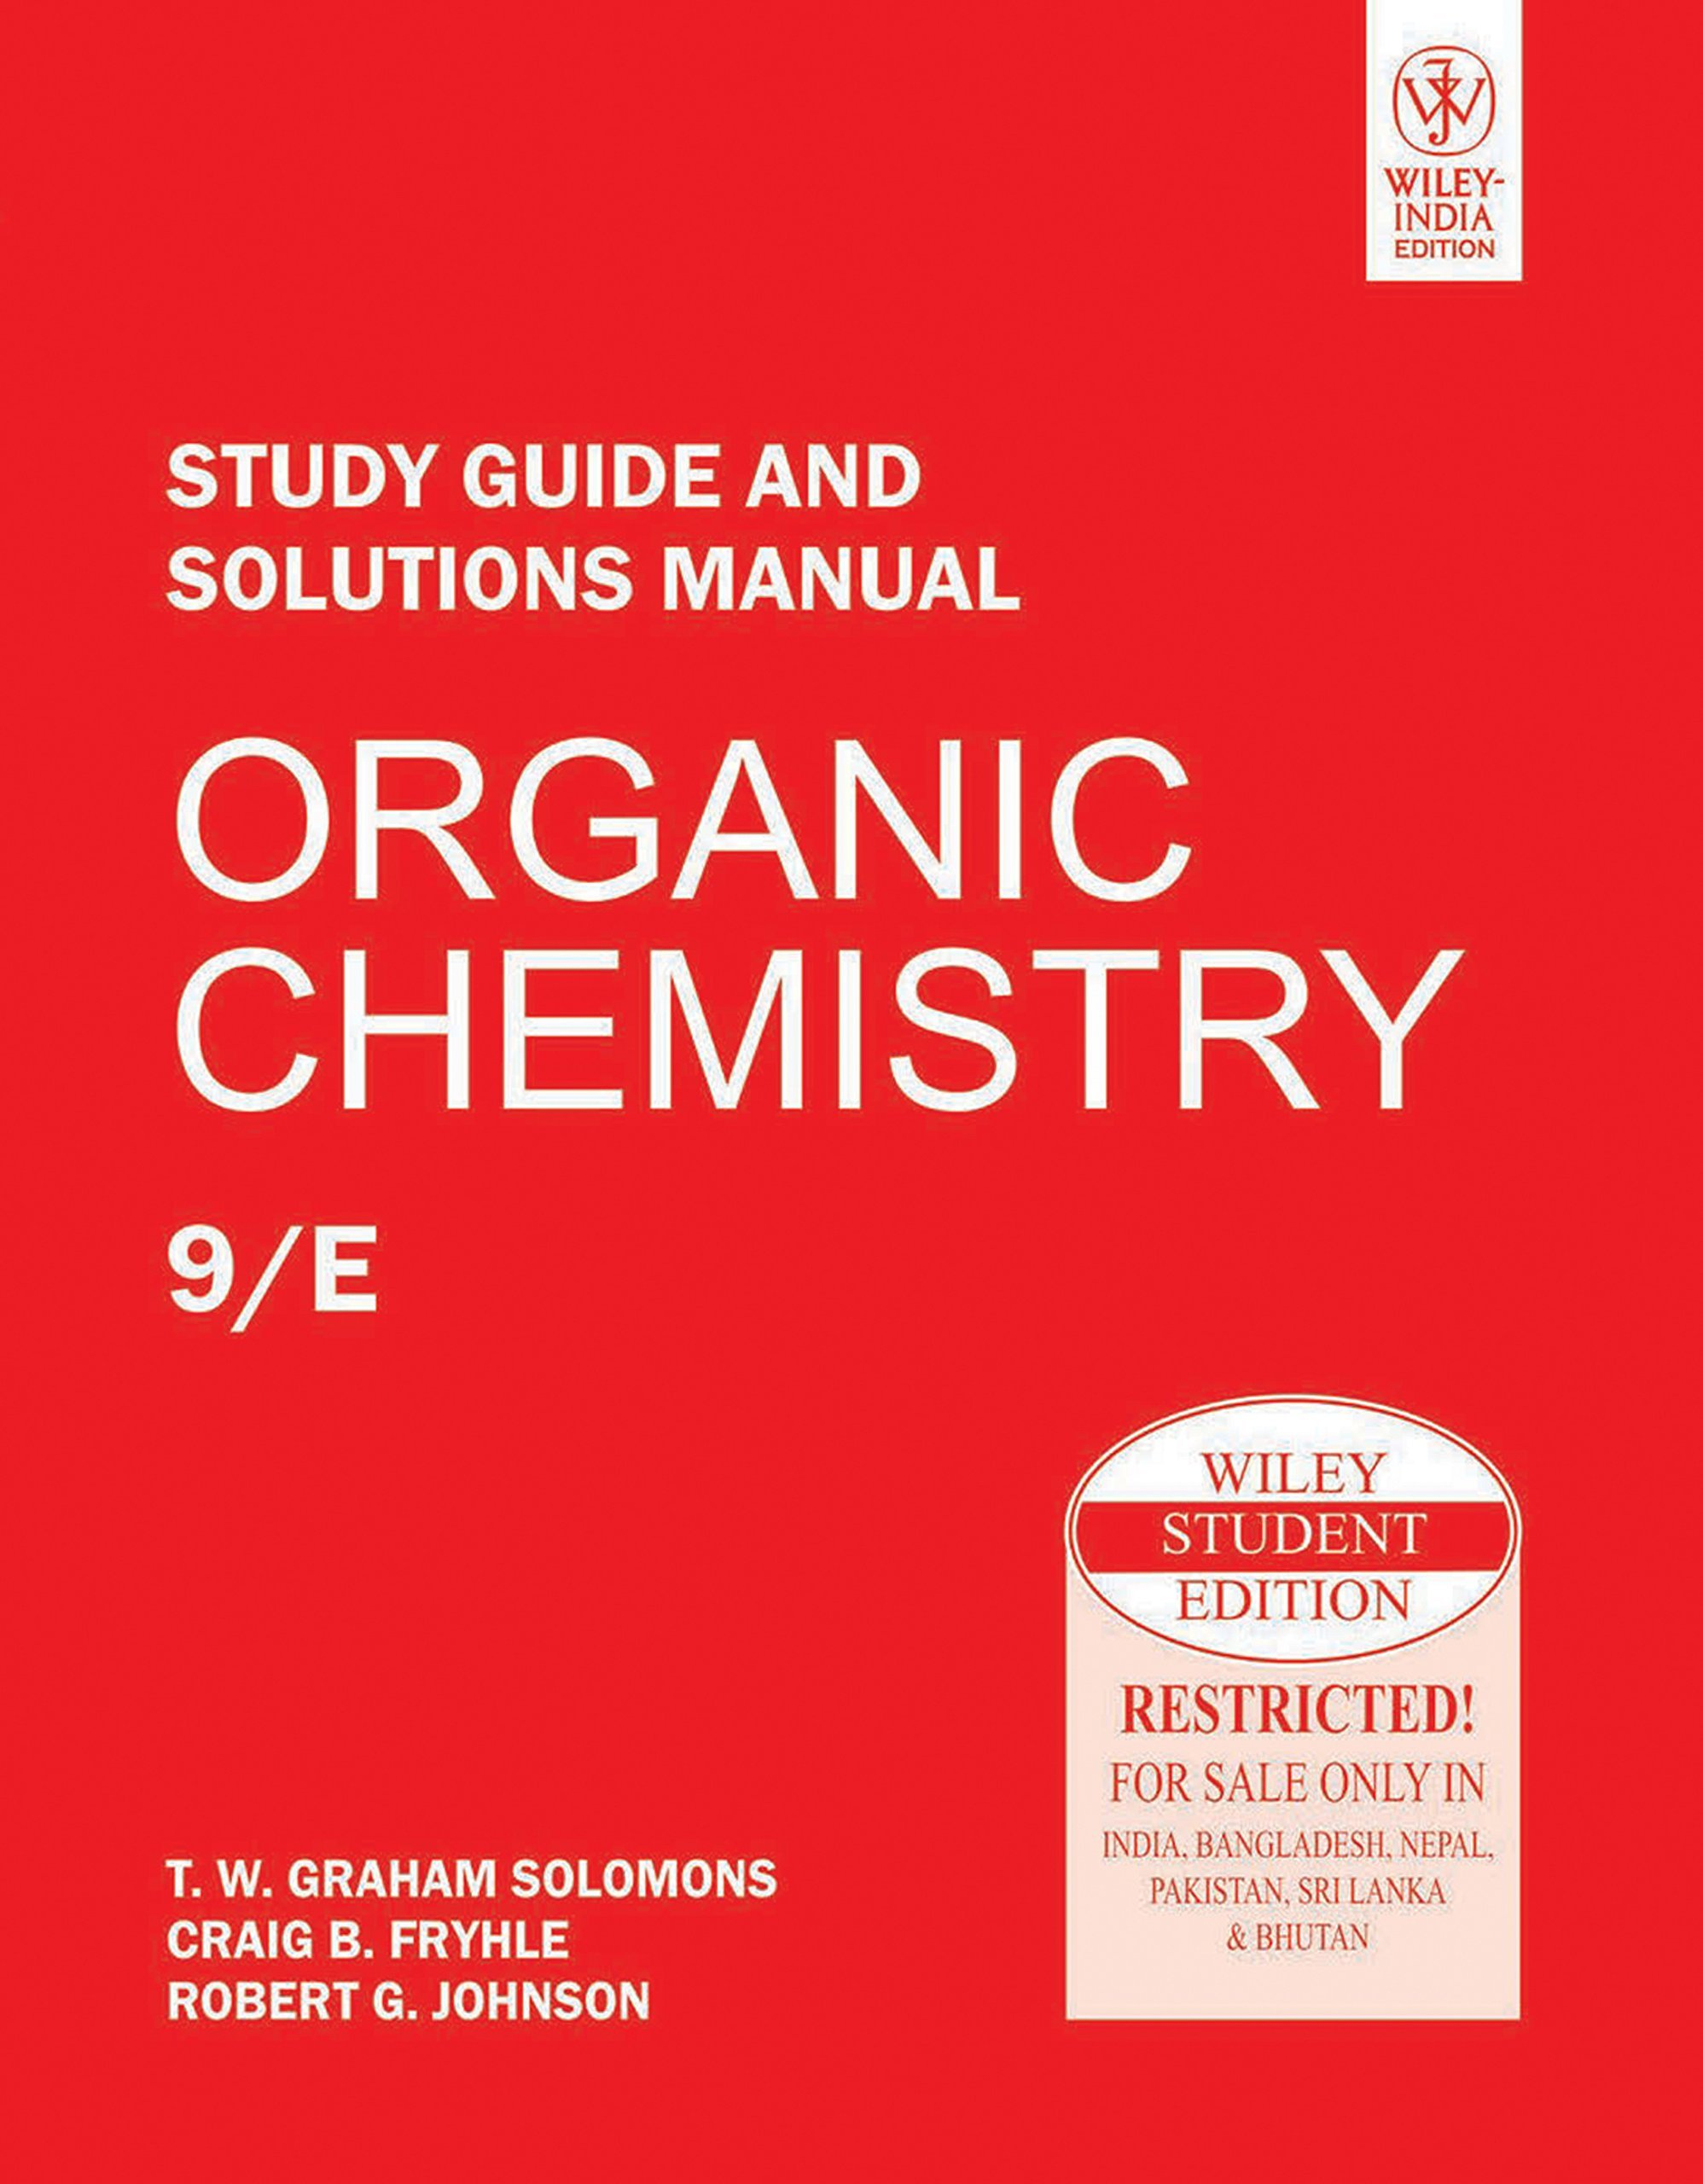 Organic Chemistry, Study Guide and Solutions Manual: T.W. Graham Solomons  and Craig B. Fryhle: 9788126526499: Amazon.com: Books